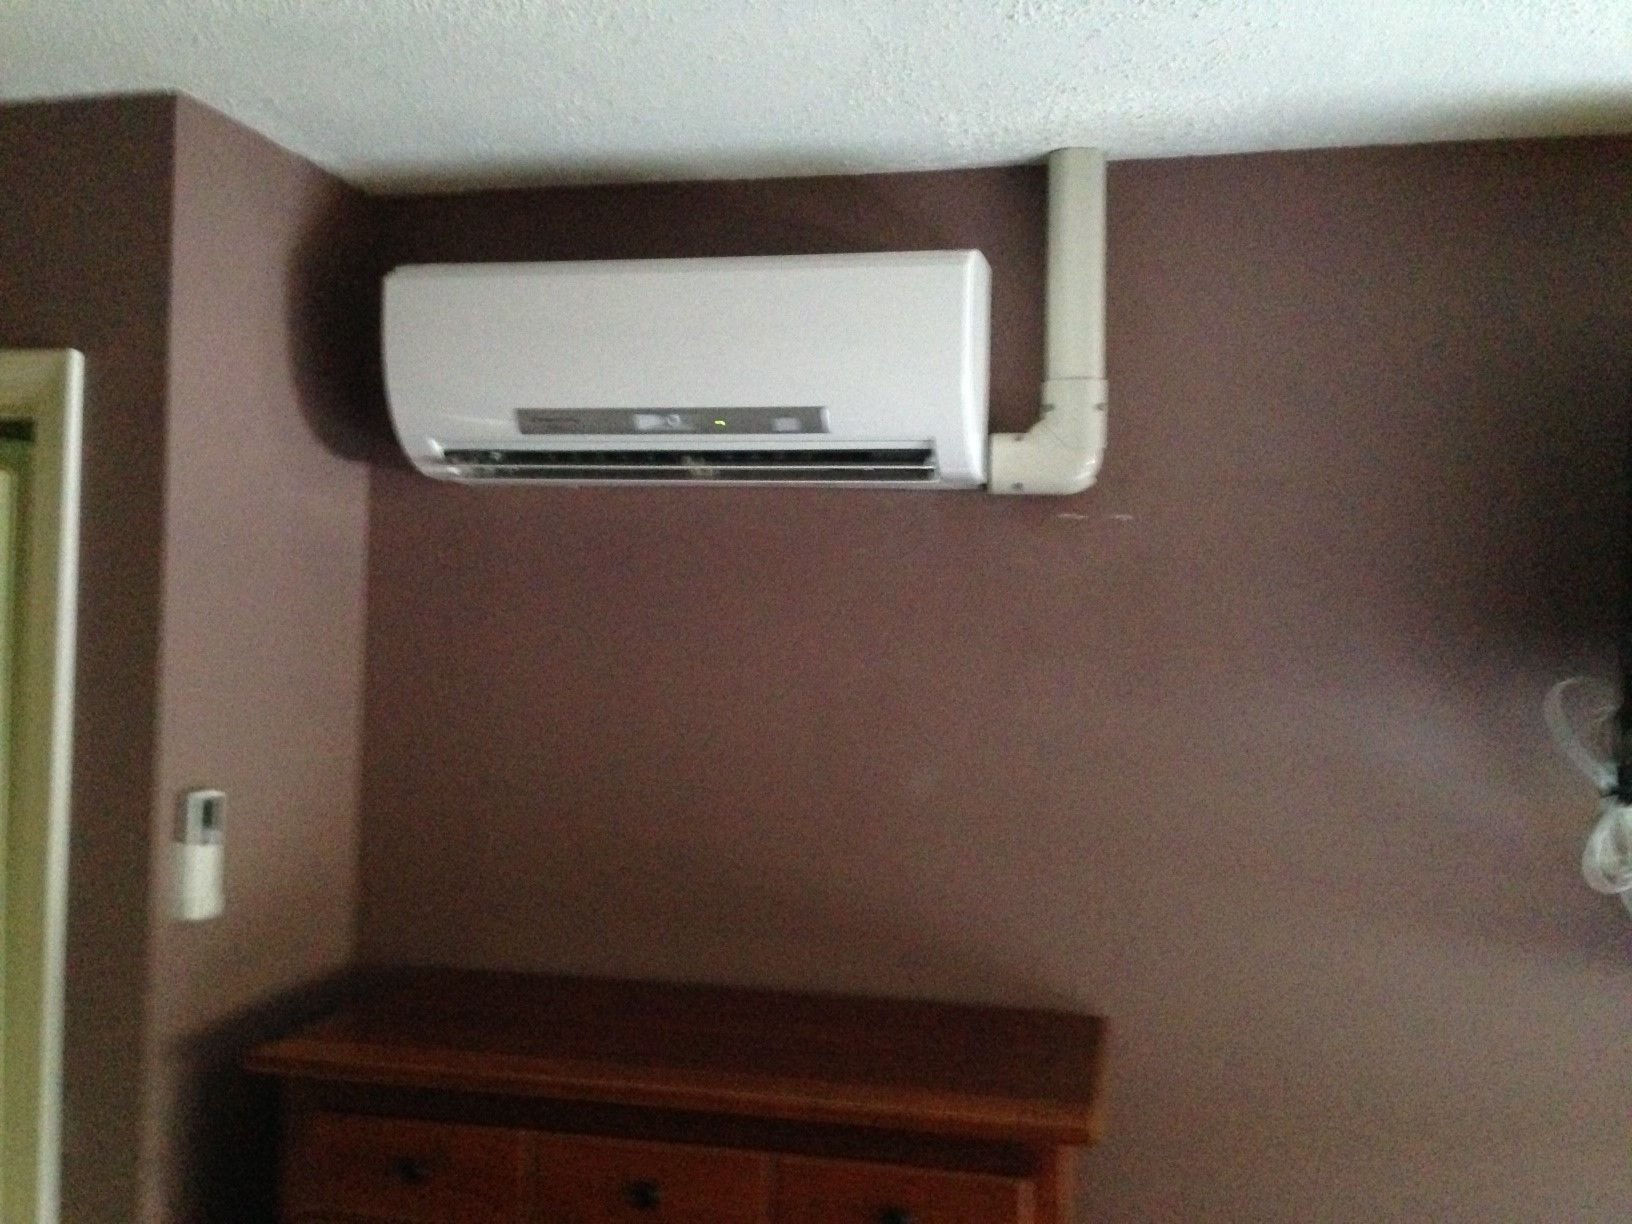 system mitsubishi cost heating cooling the ductless shore name of and a jersey view at blue height blog t width livingroom with